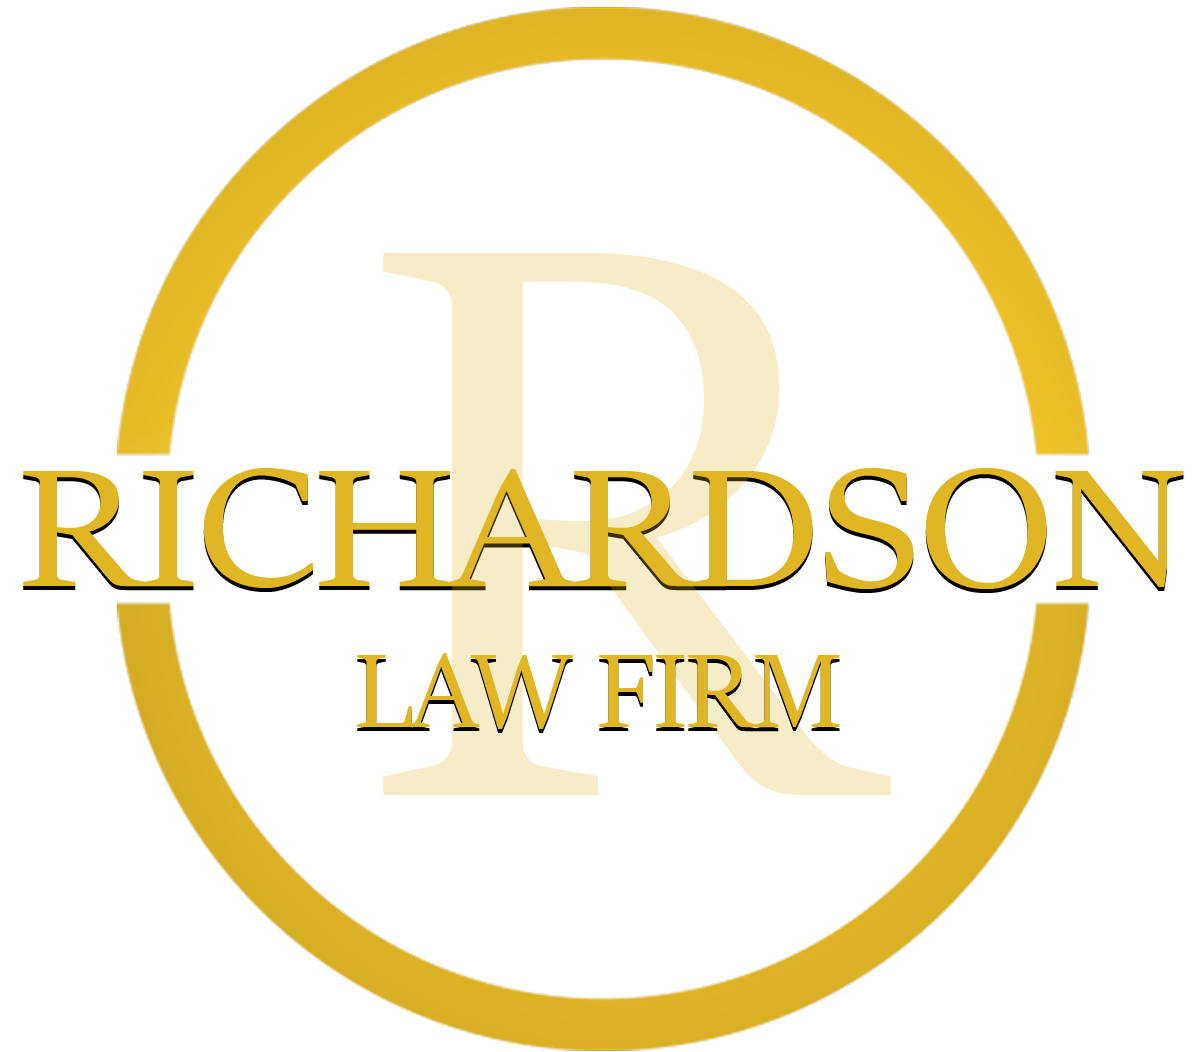 RICHARDSON LAW FIRM